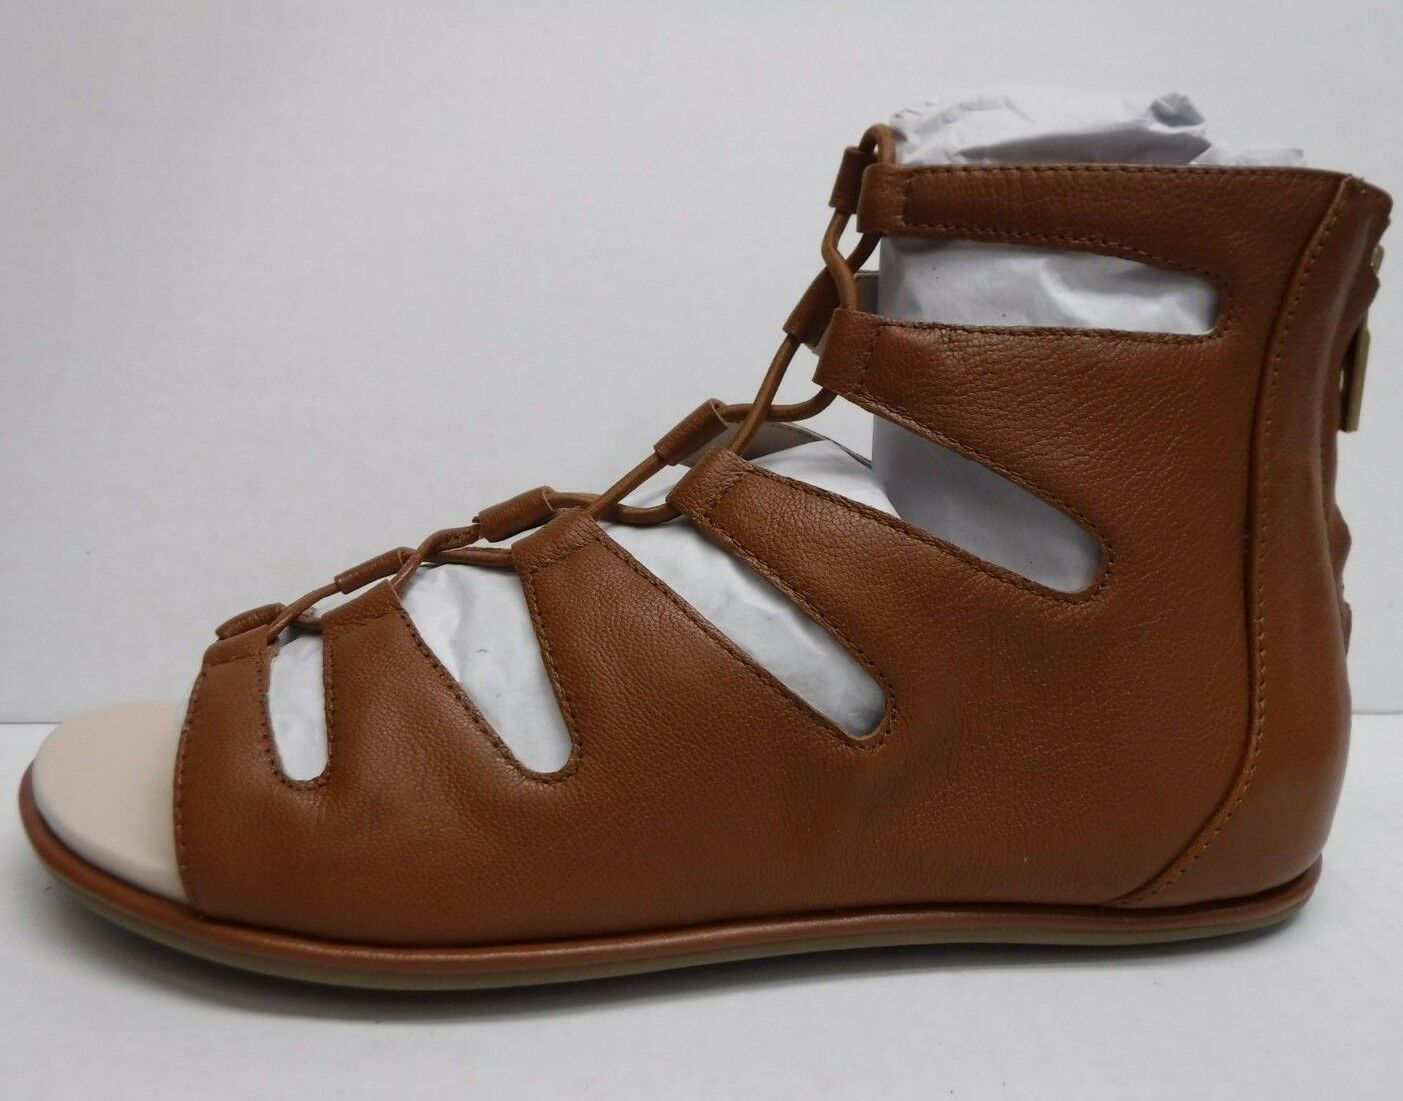 Kenneth Cole New York Size 6.5 Brown Leather Gladiator Sandals New Womens shoes